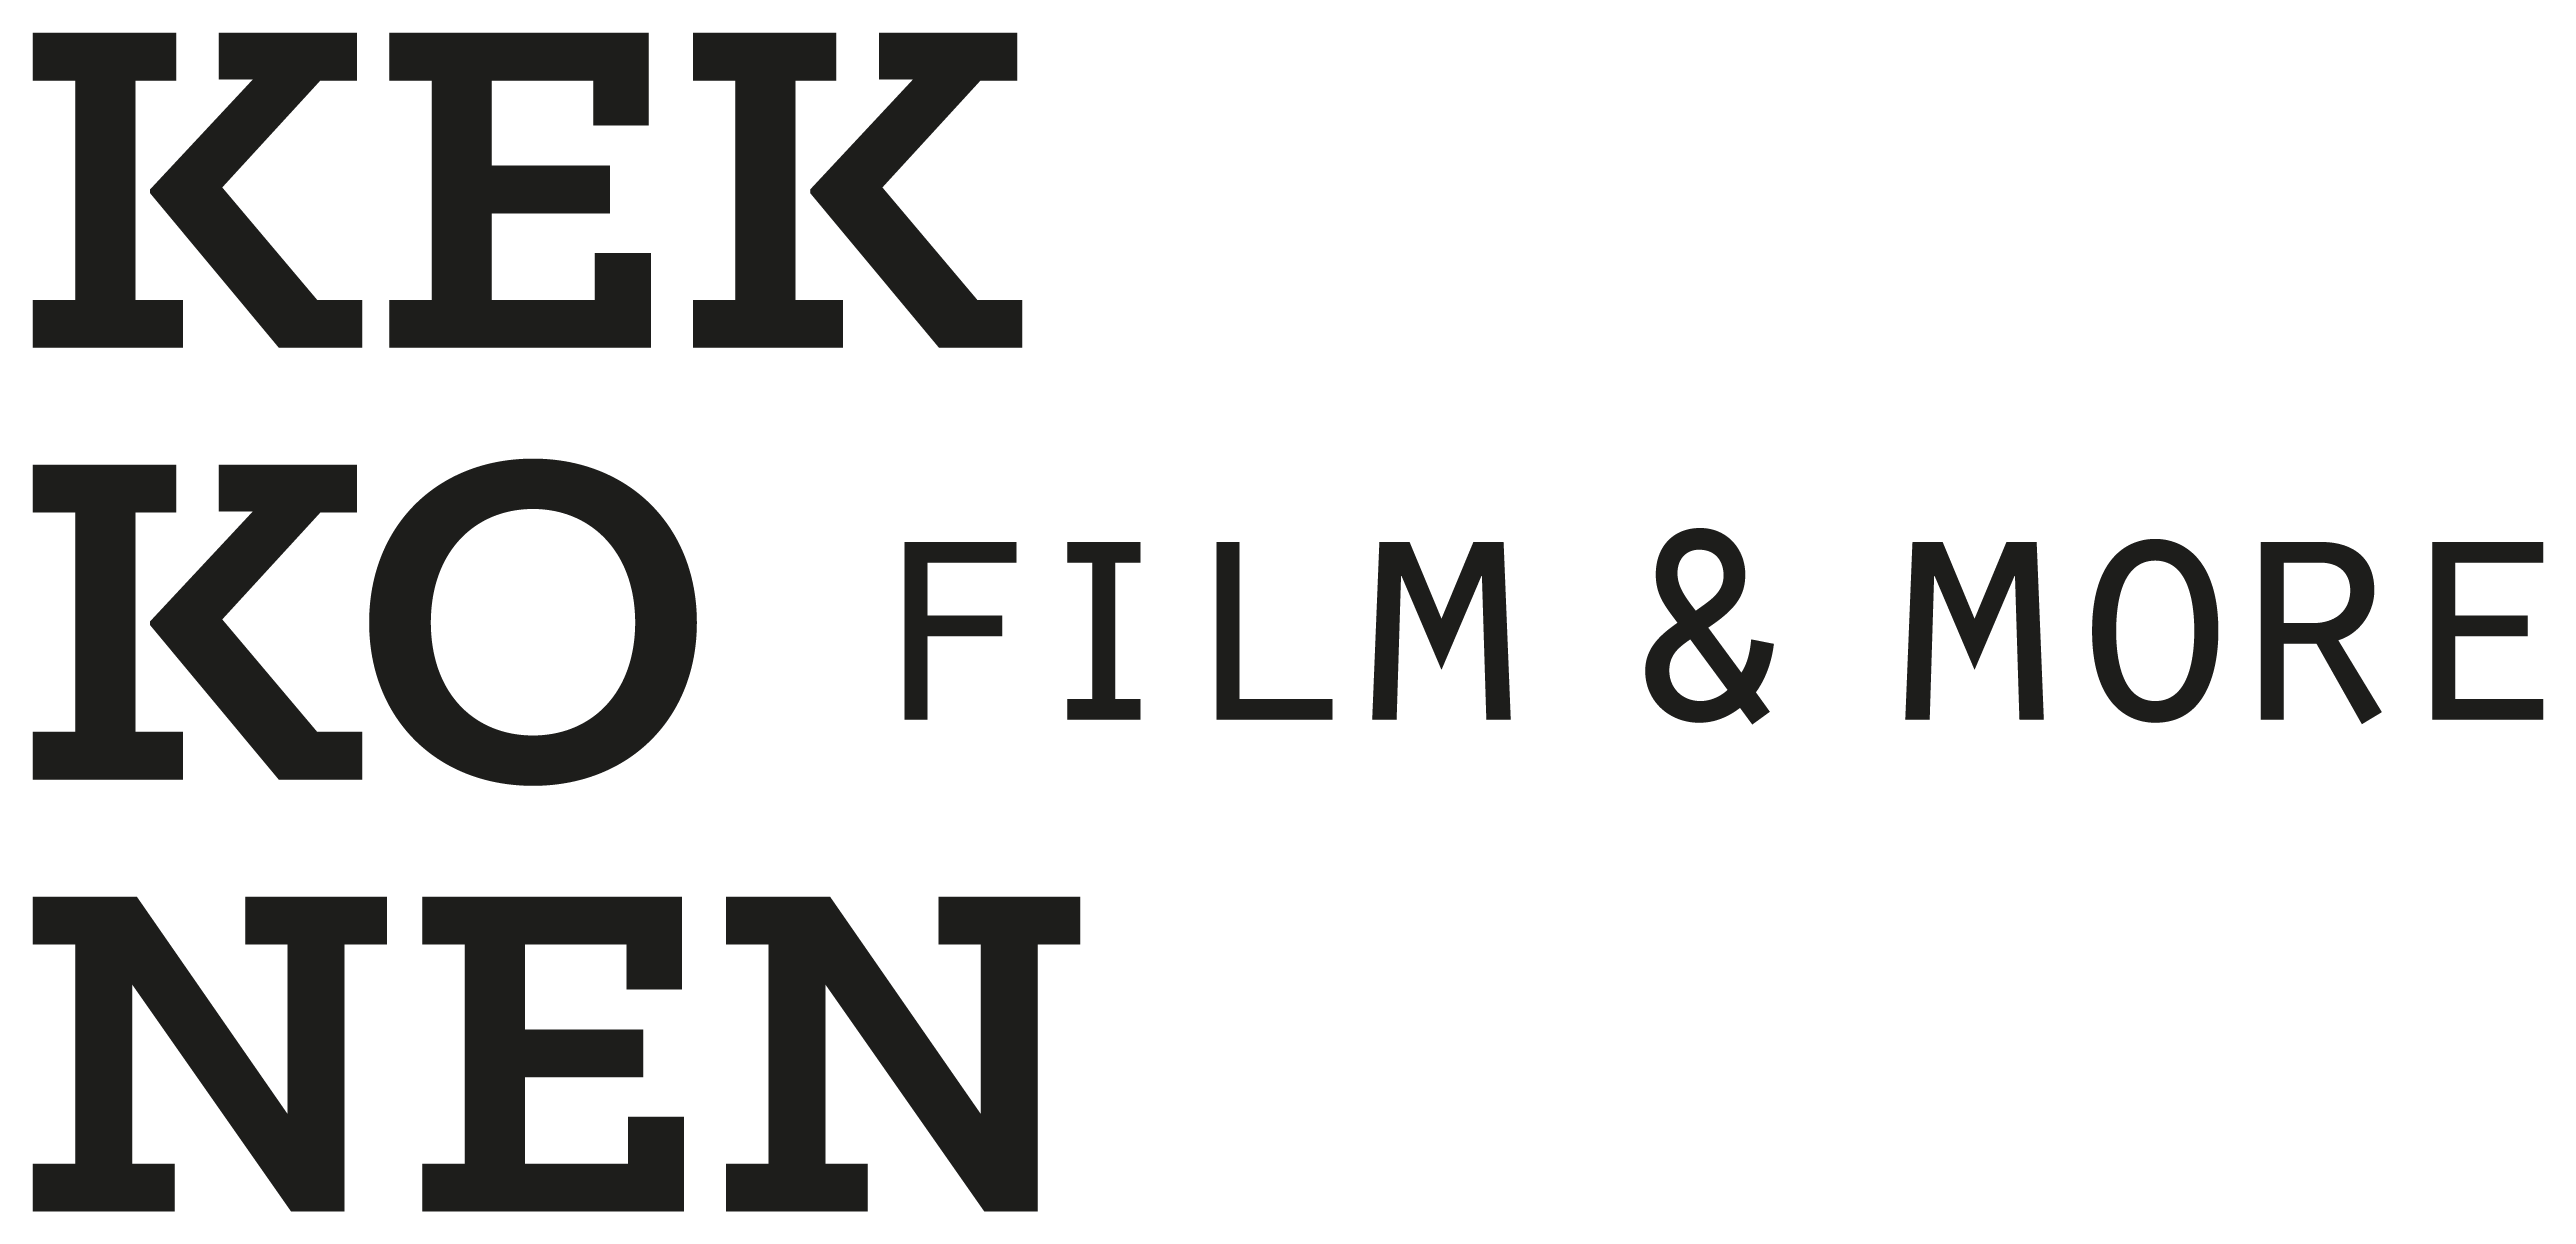 Kekkonen Film & More